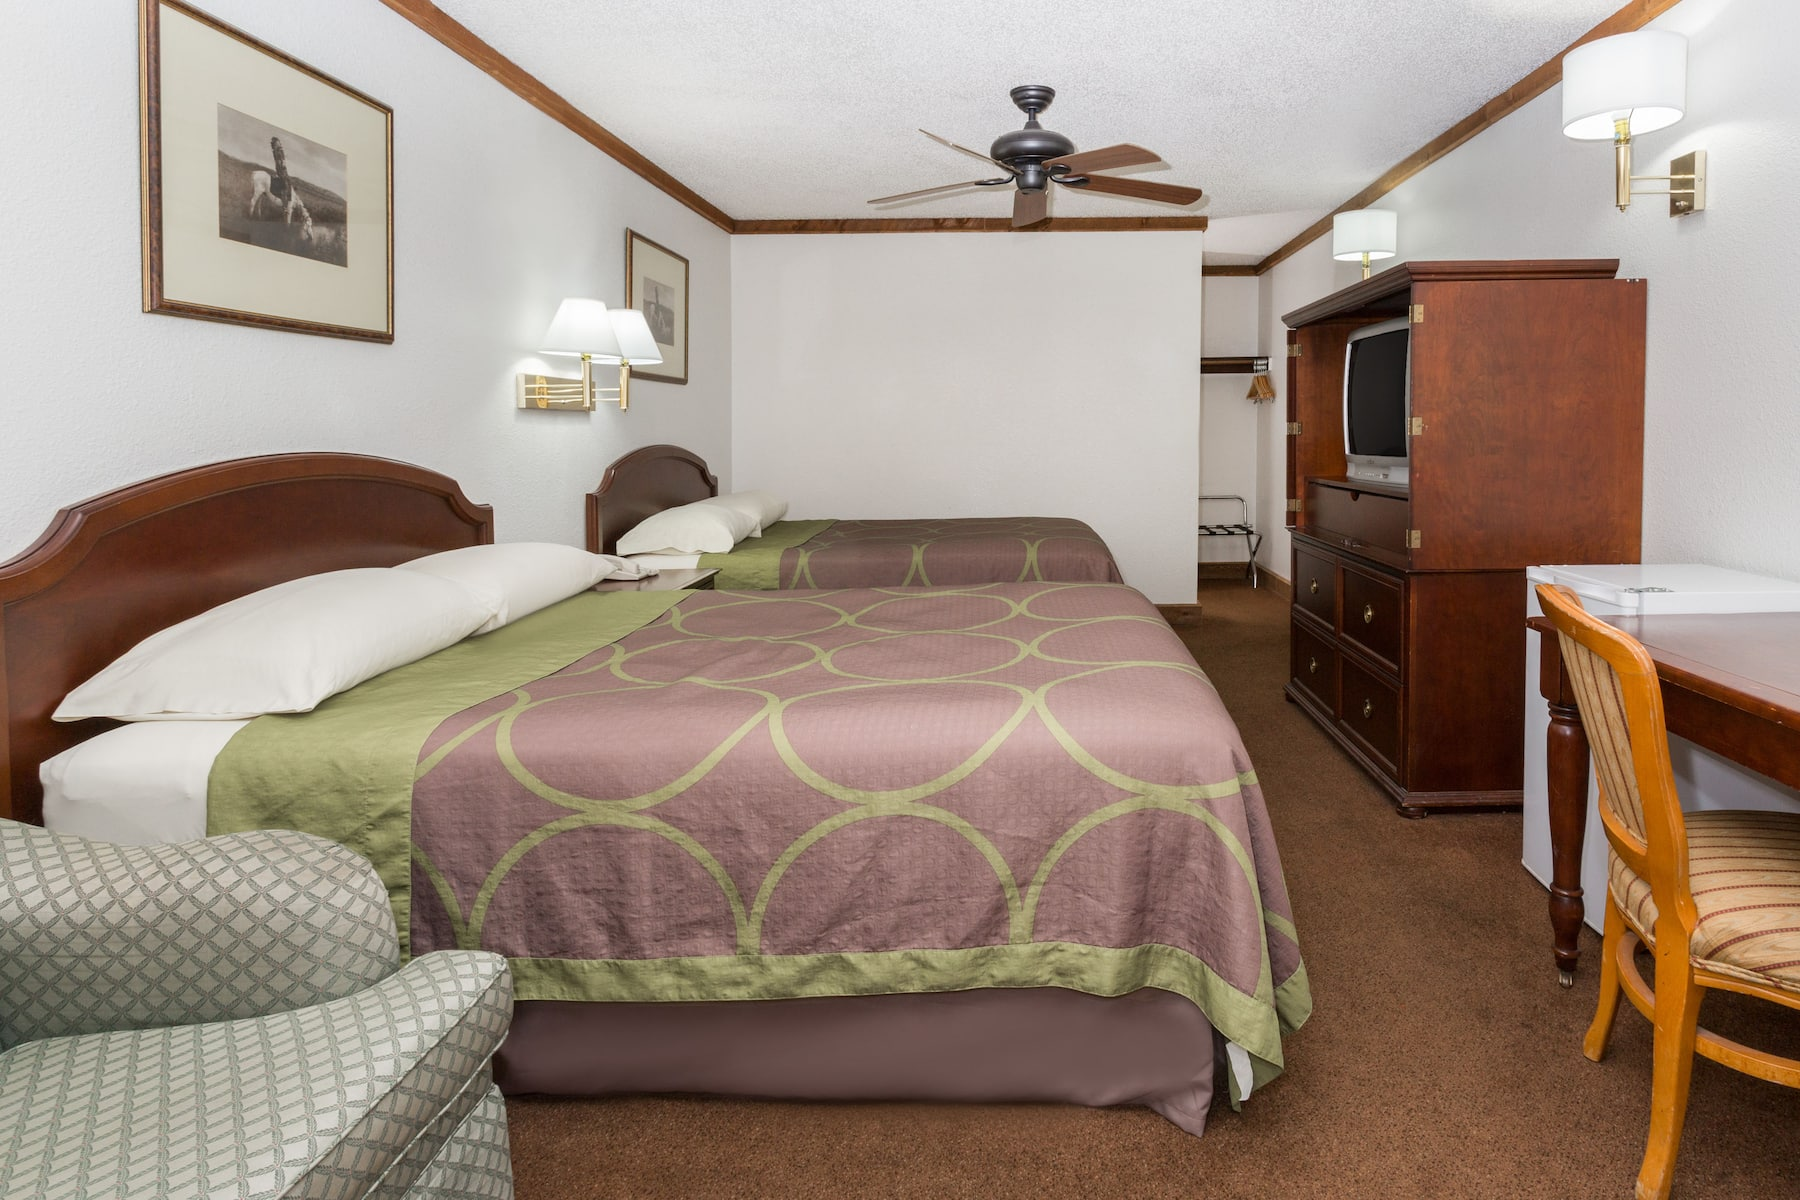 Guest room at the super 8 georgetown in georgetown colorado